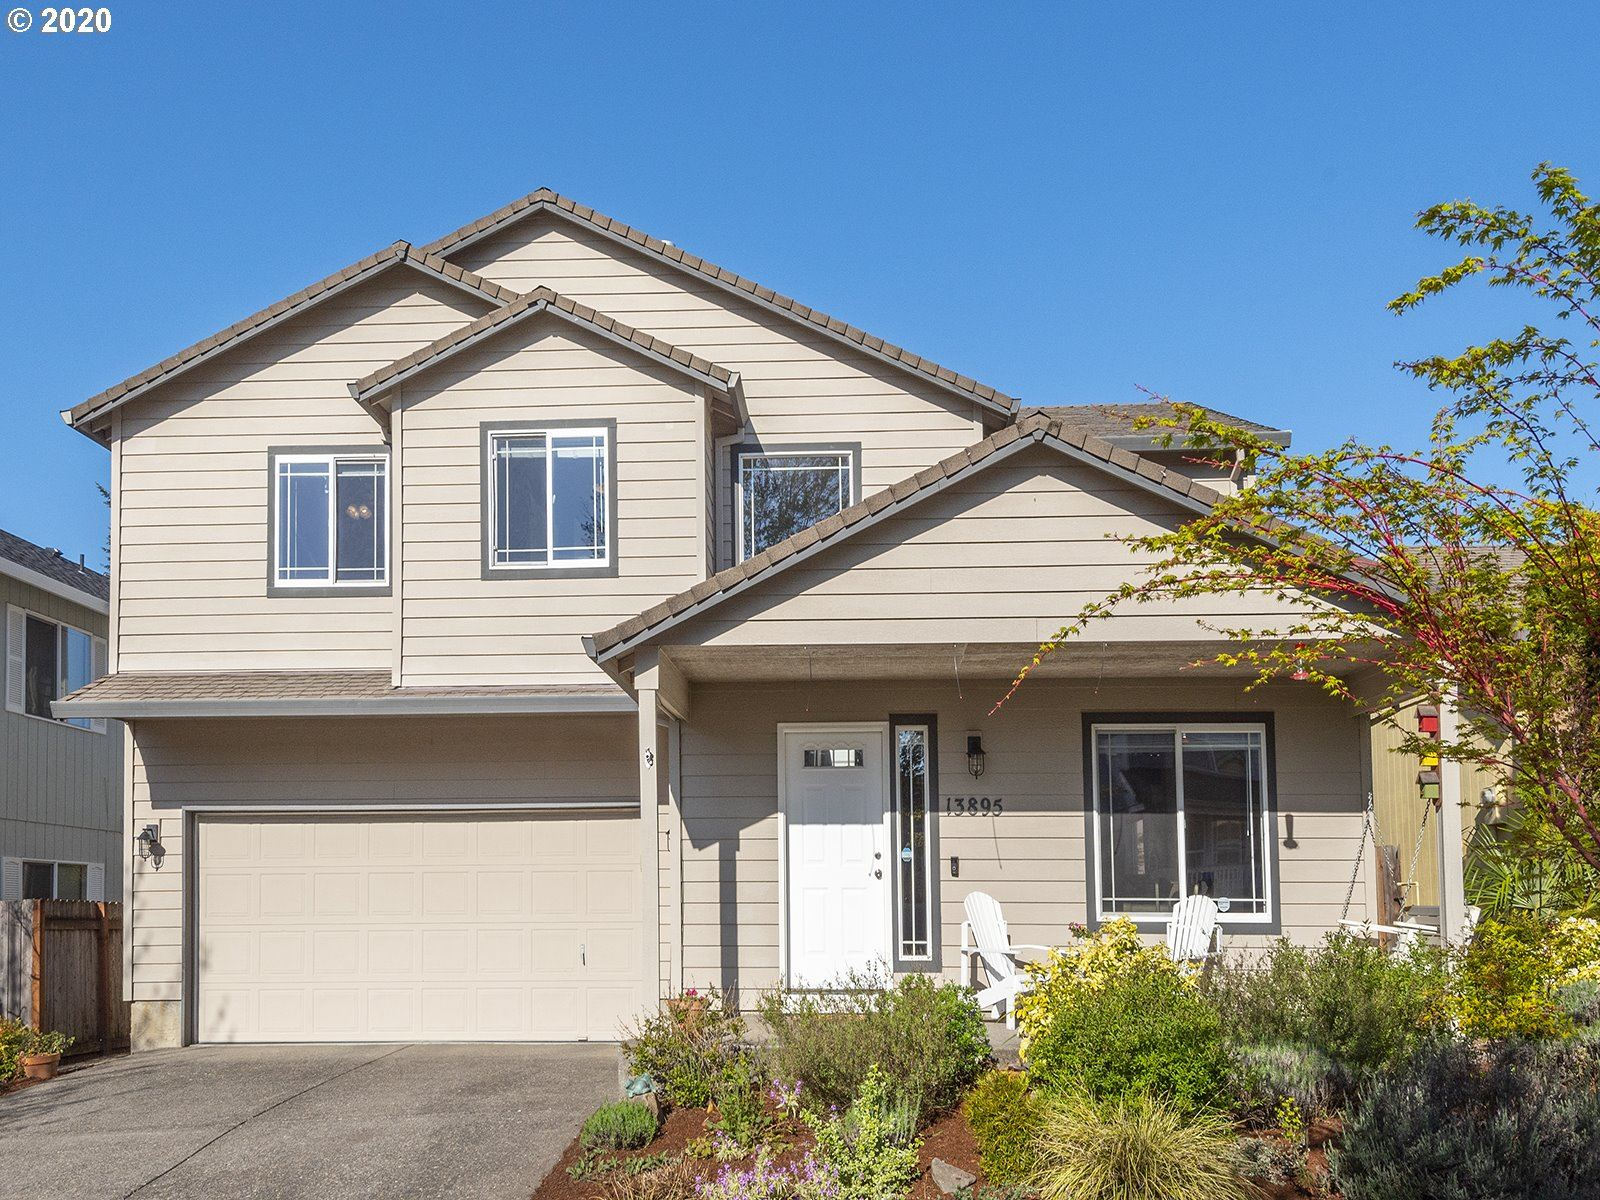 13895 SE RED SUNSET AVE, Clackamas, OR 97015 - MLS#: 20285199